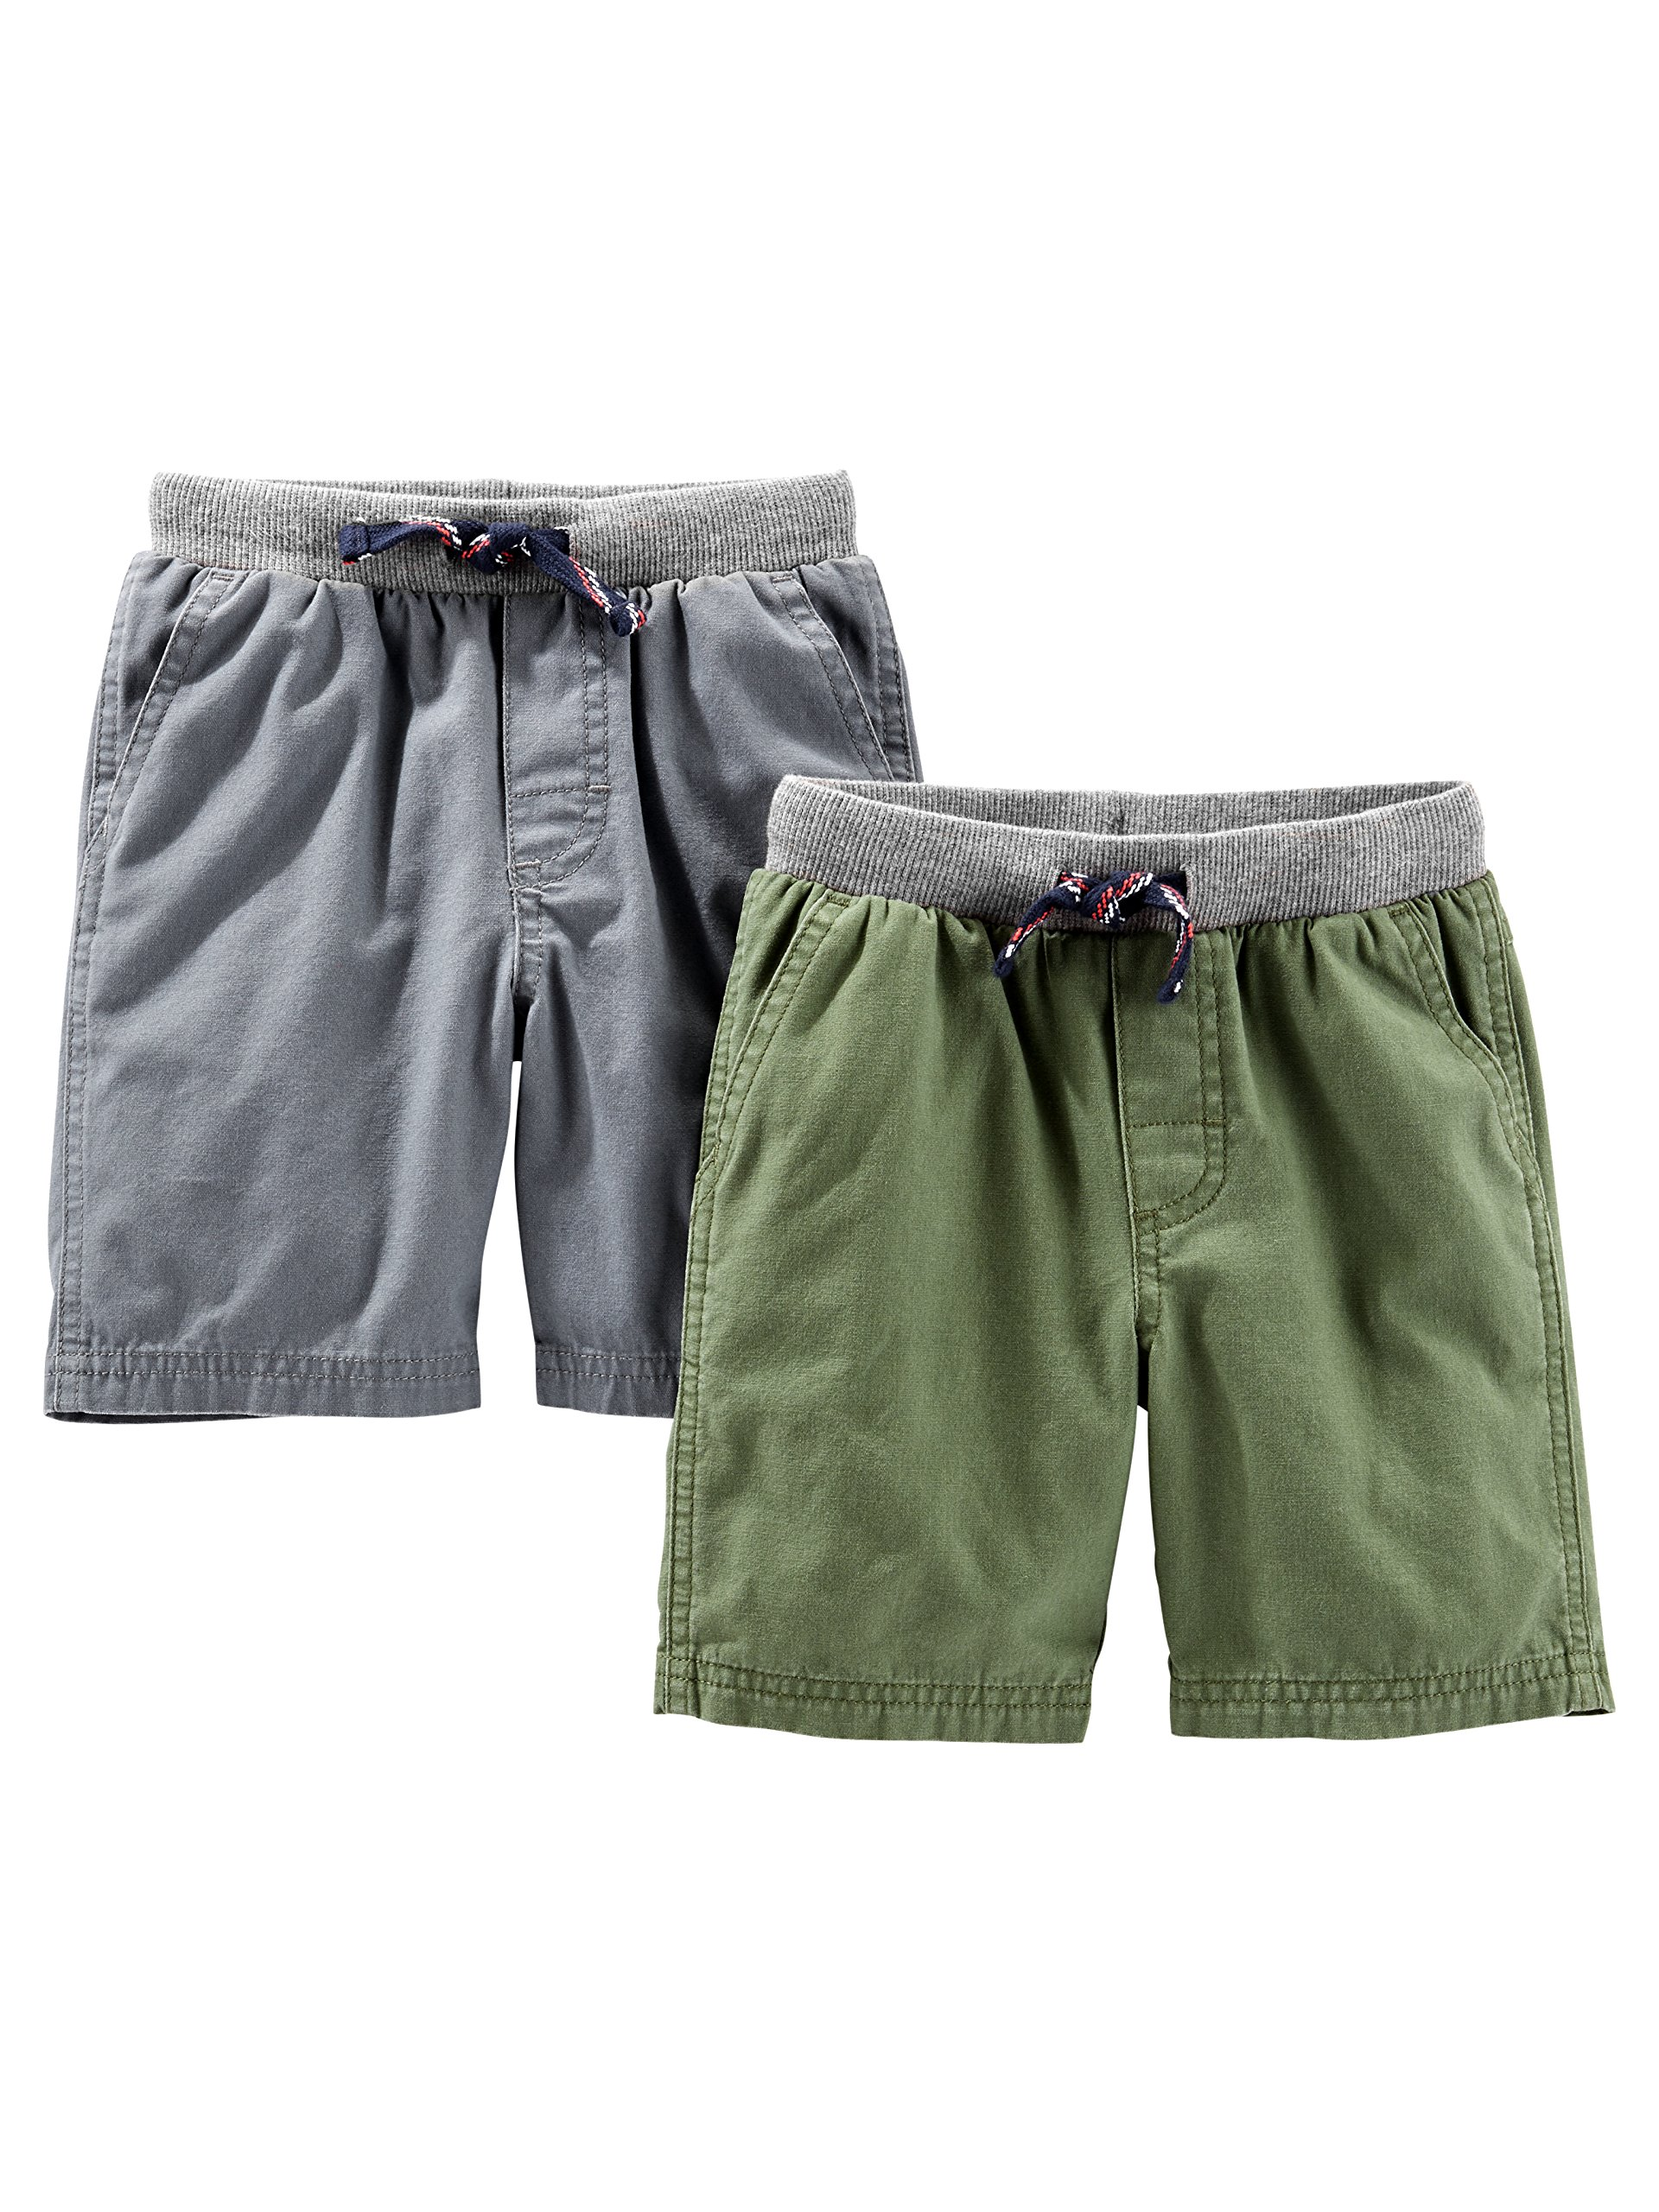 Simple Joys by Carter's Baby Boys' Toddler 2-Pack Shorts, Green, Gray, 2T